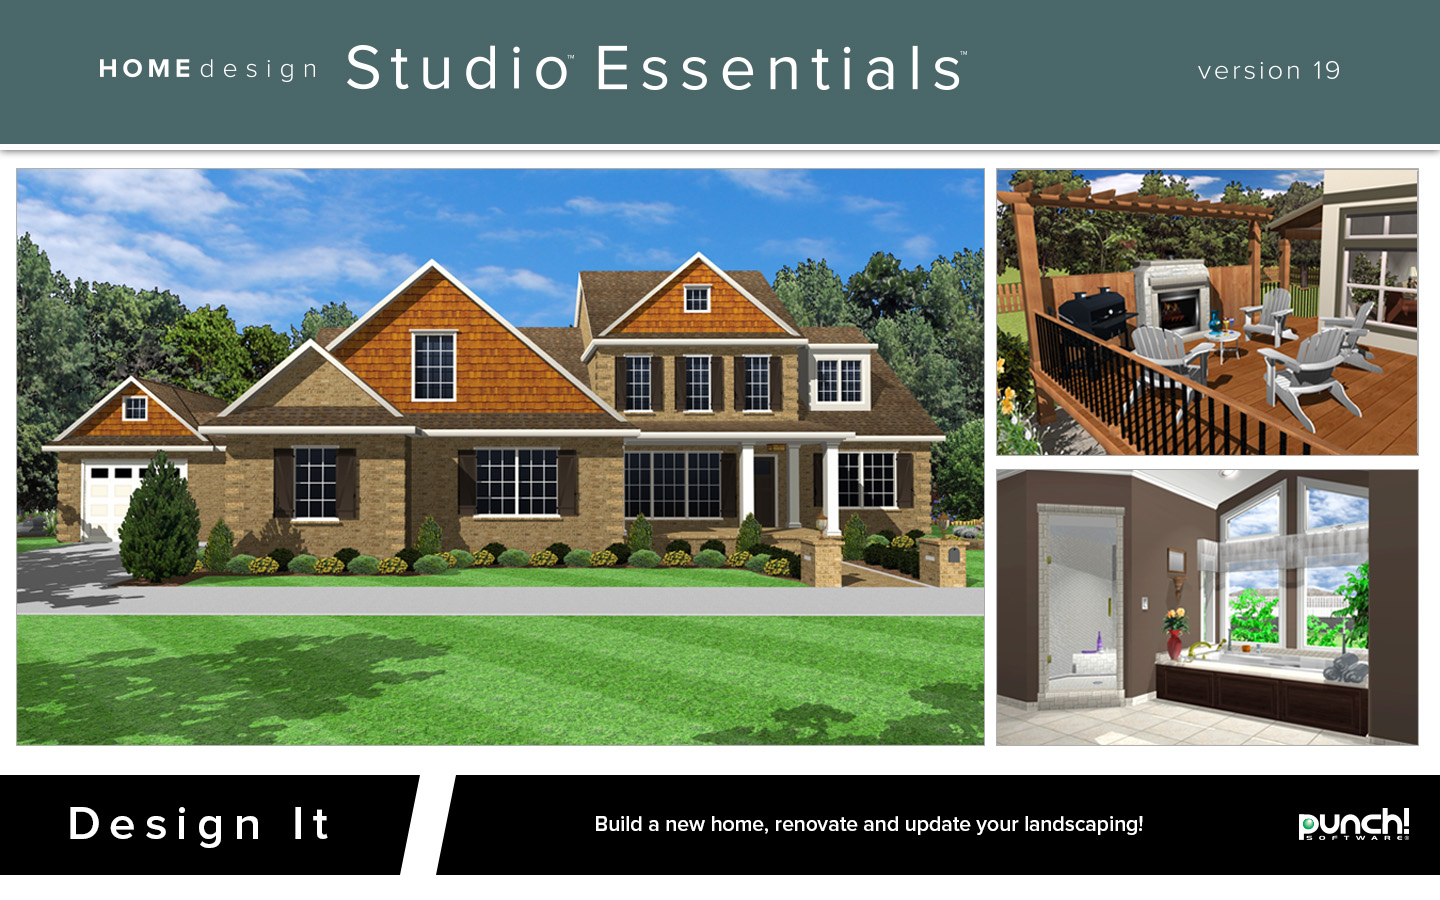 Punch home design essentials for mac v19 download Punch pro home design free download